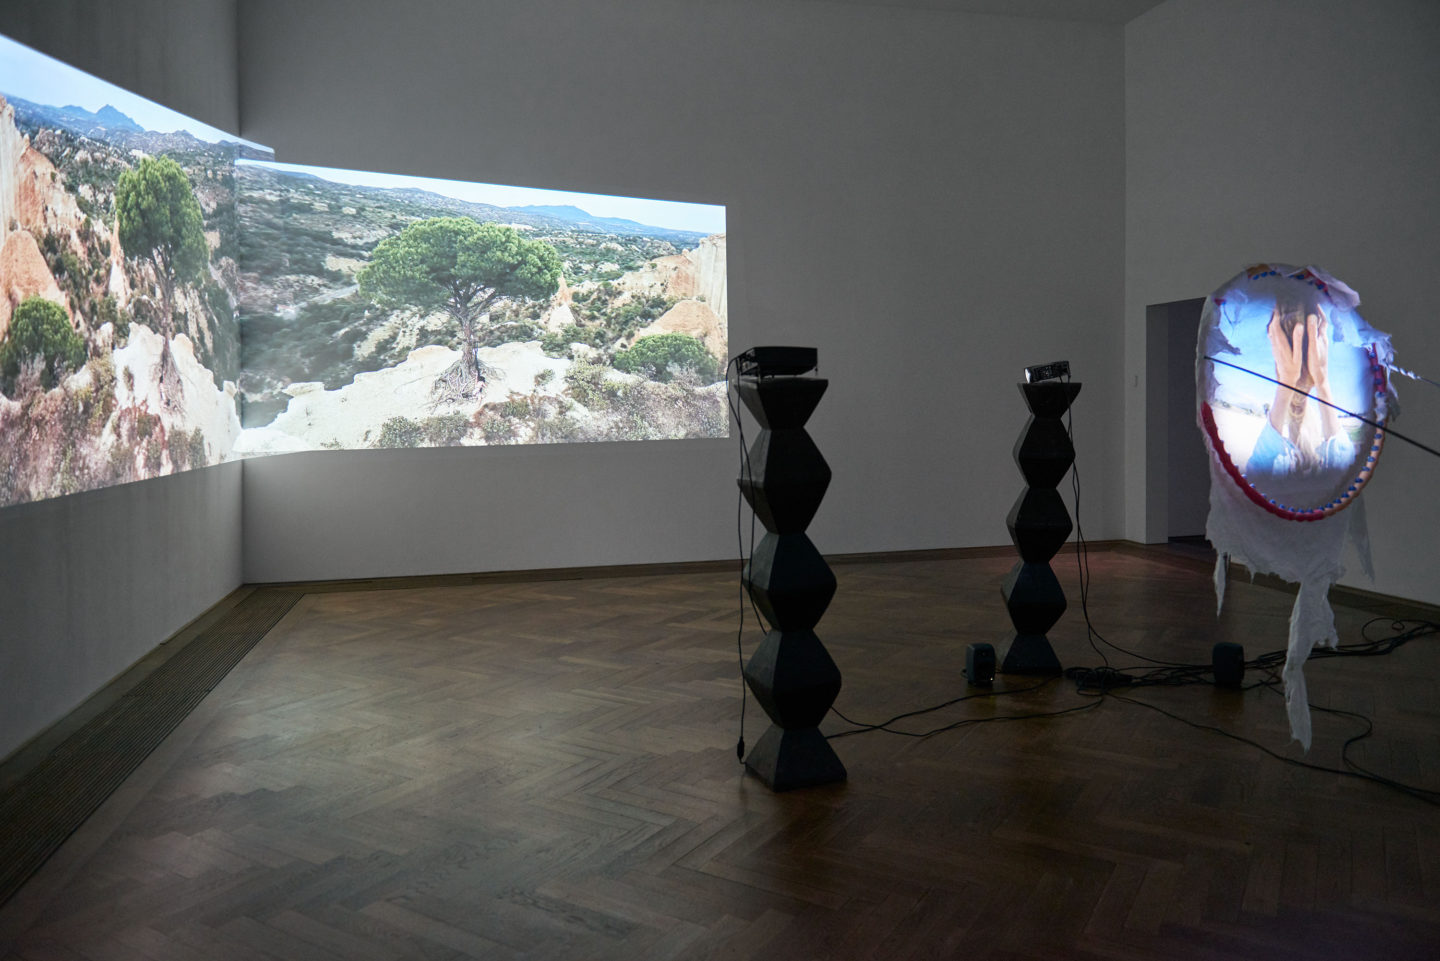 """Installation View Raphaela Vogel """"Ultranackt – view on Fruit of the Hoop, 2018"""" at Kunsthalle Basel, 2018 / Photo: Philipp Hänger / Courtesy: the artist and BQ, Berlin"""